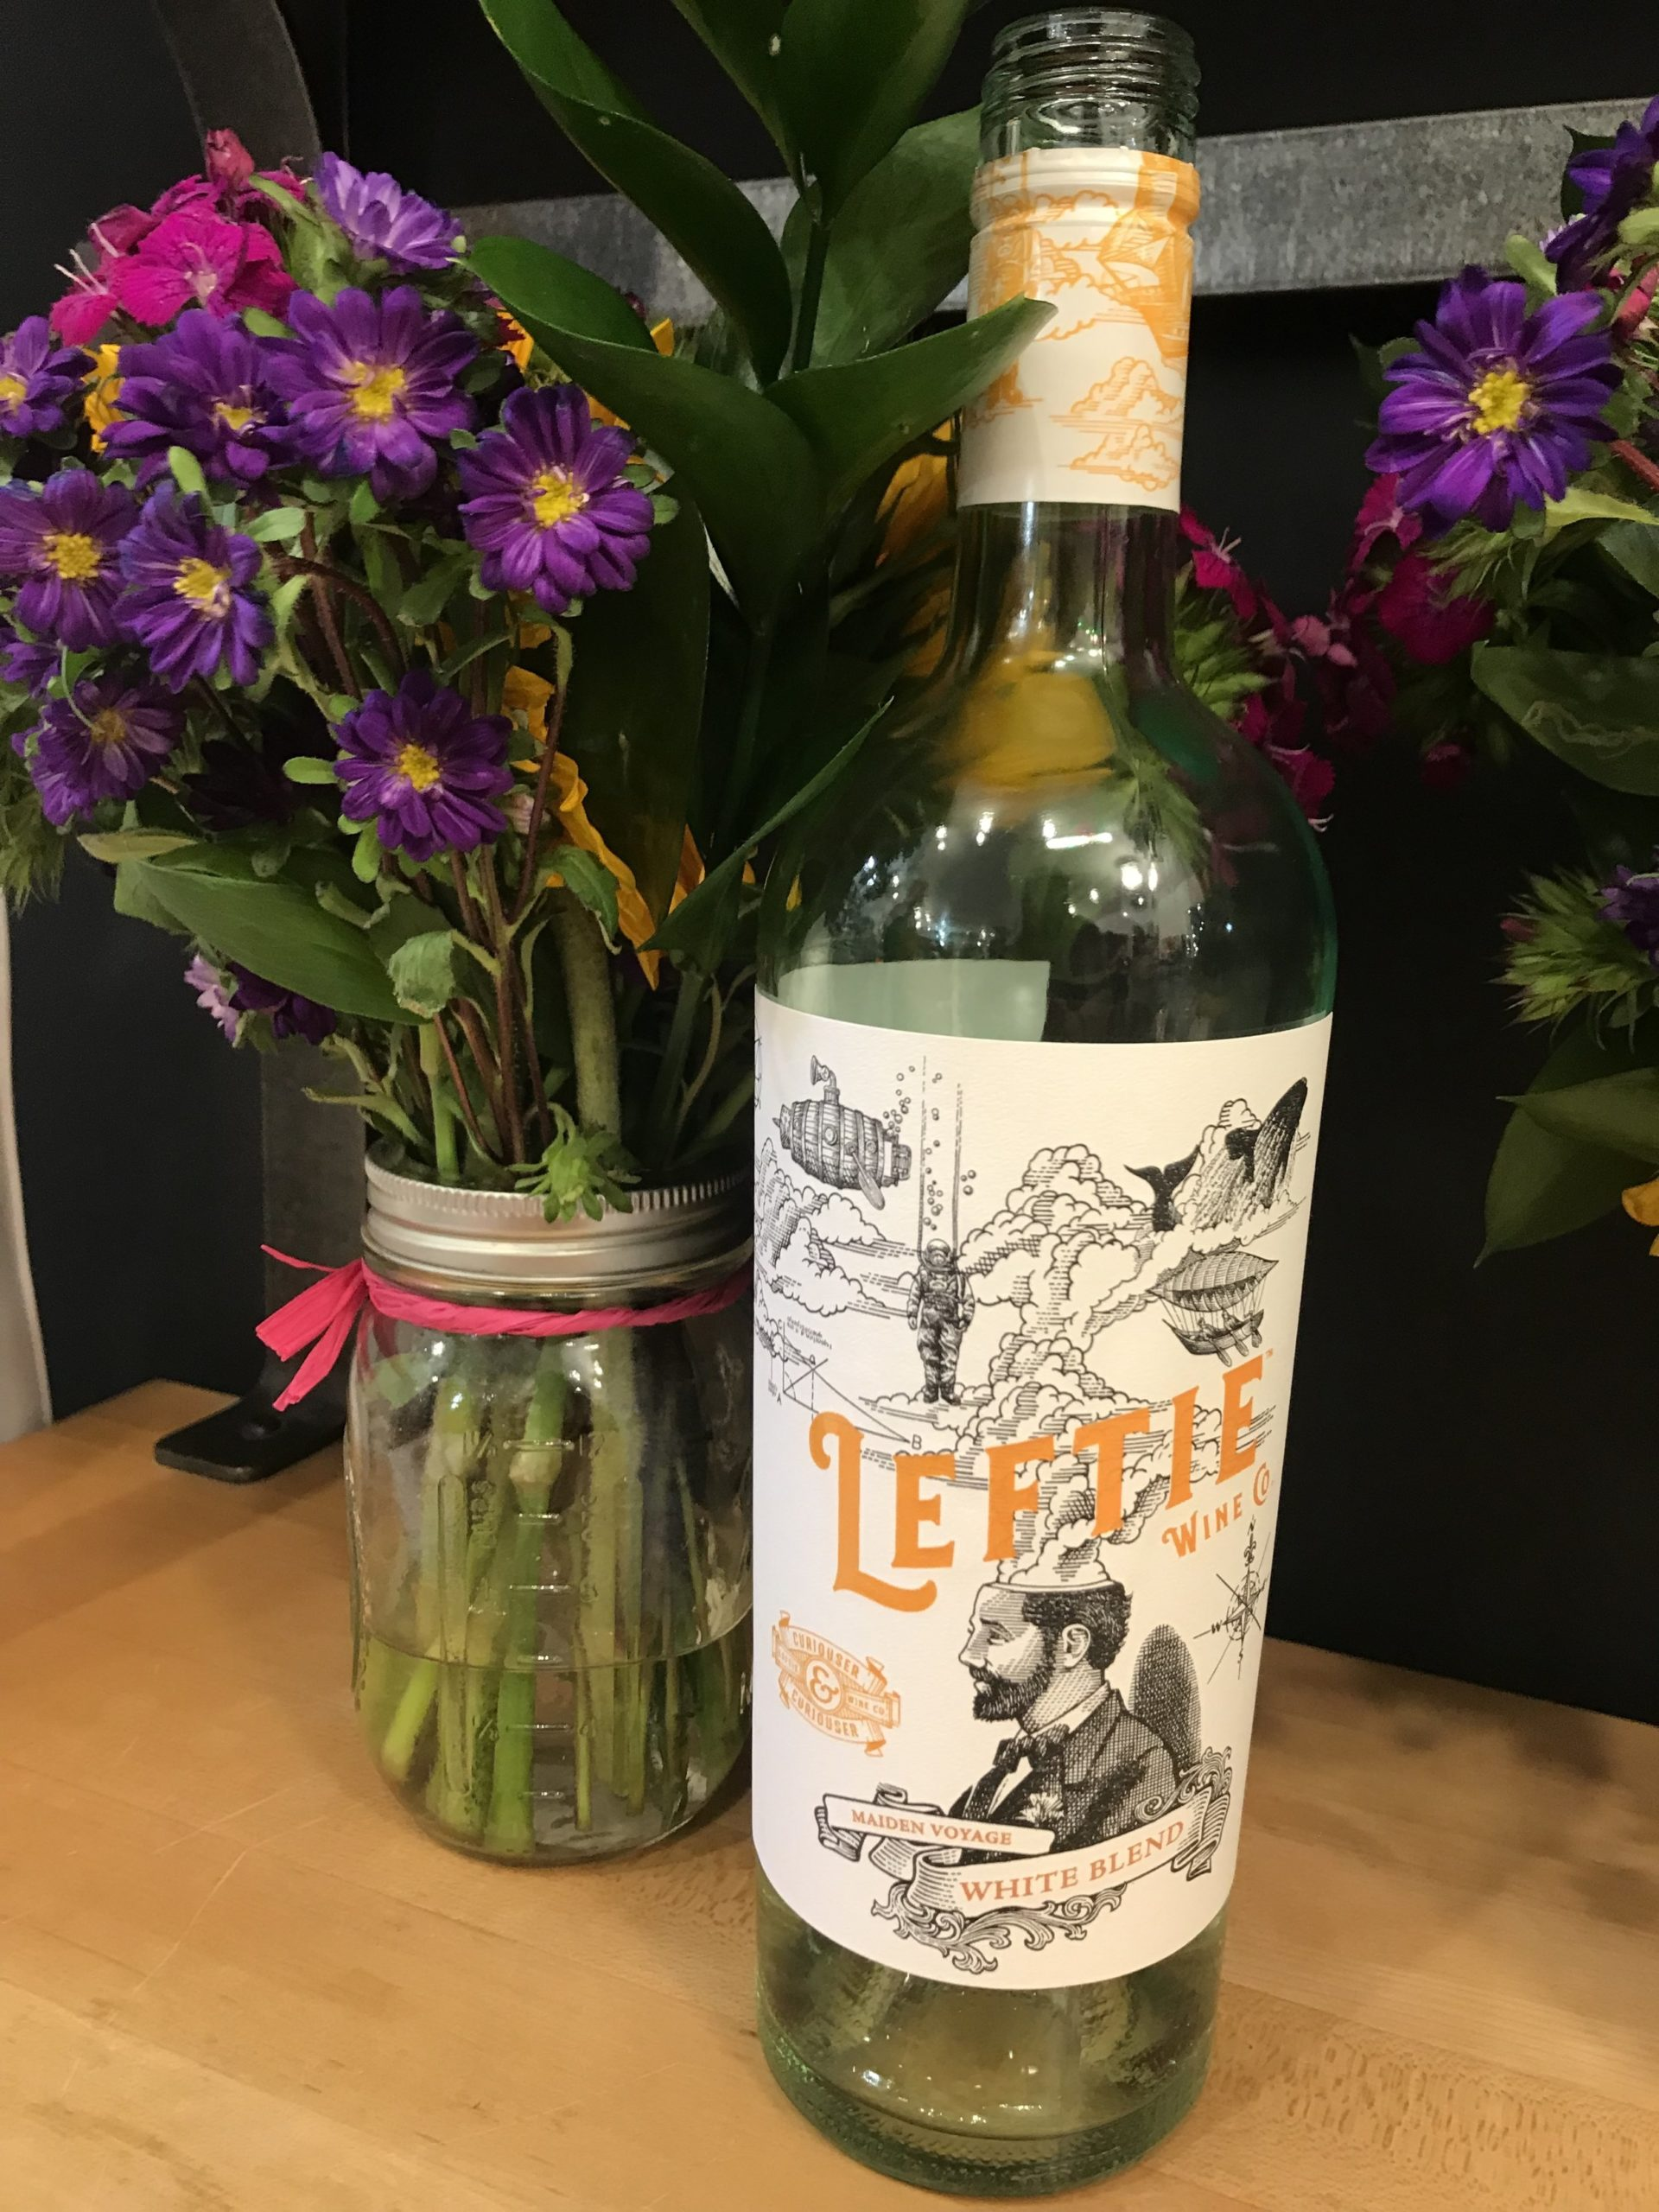 This new line of fruit infused wines hit Sprouts shelves on July 1! The white blend has pineapple juice and the red blend has raspberry juice!